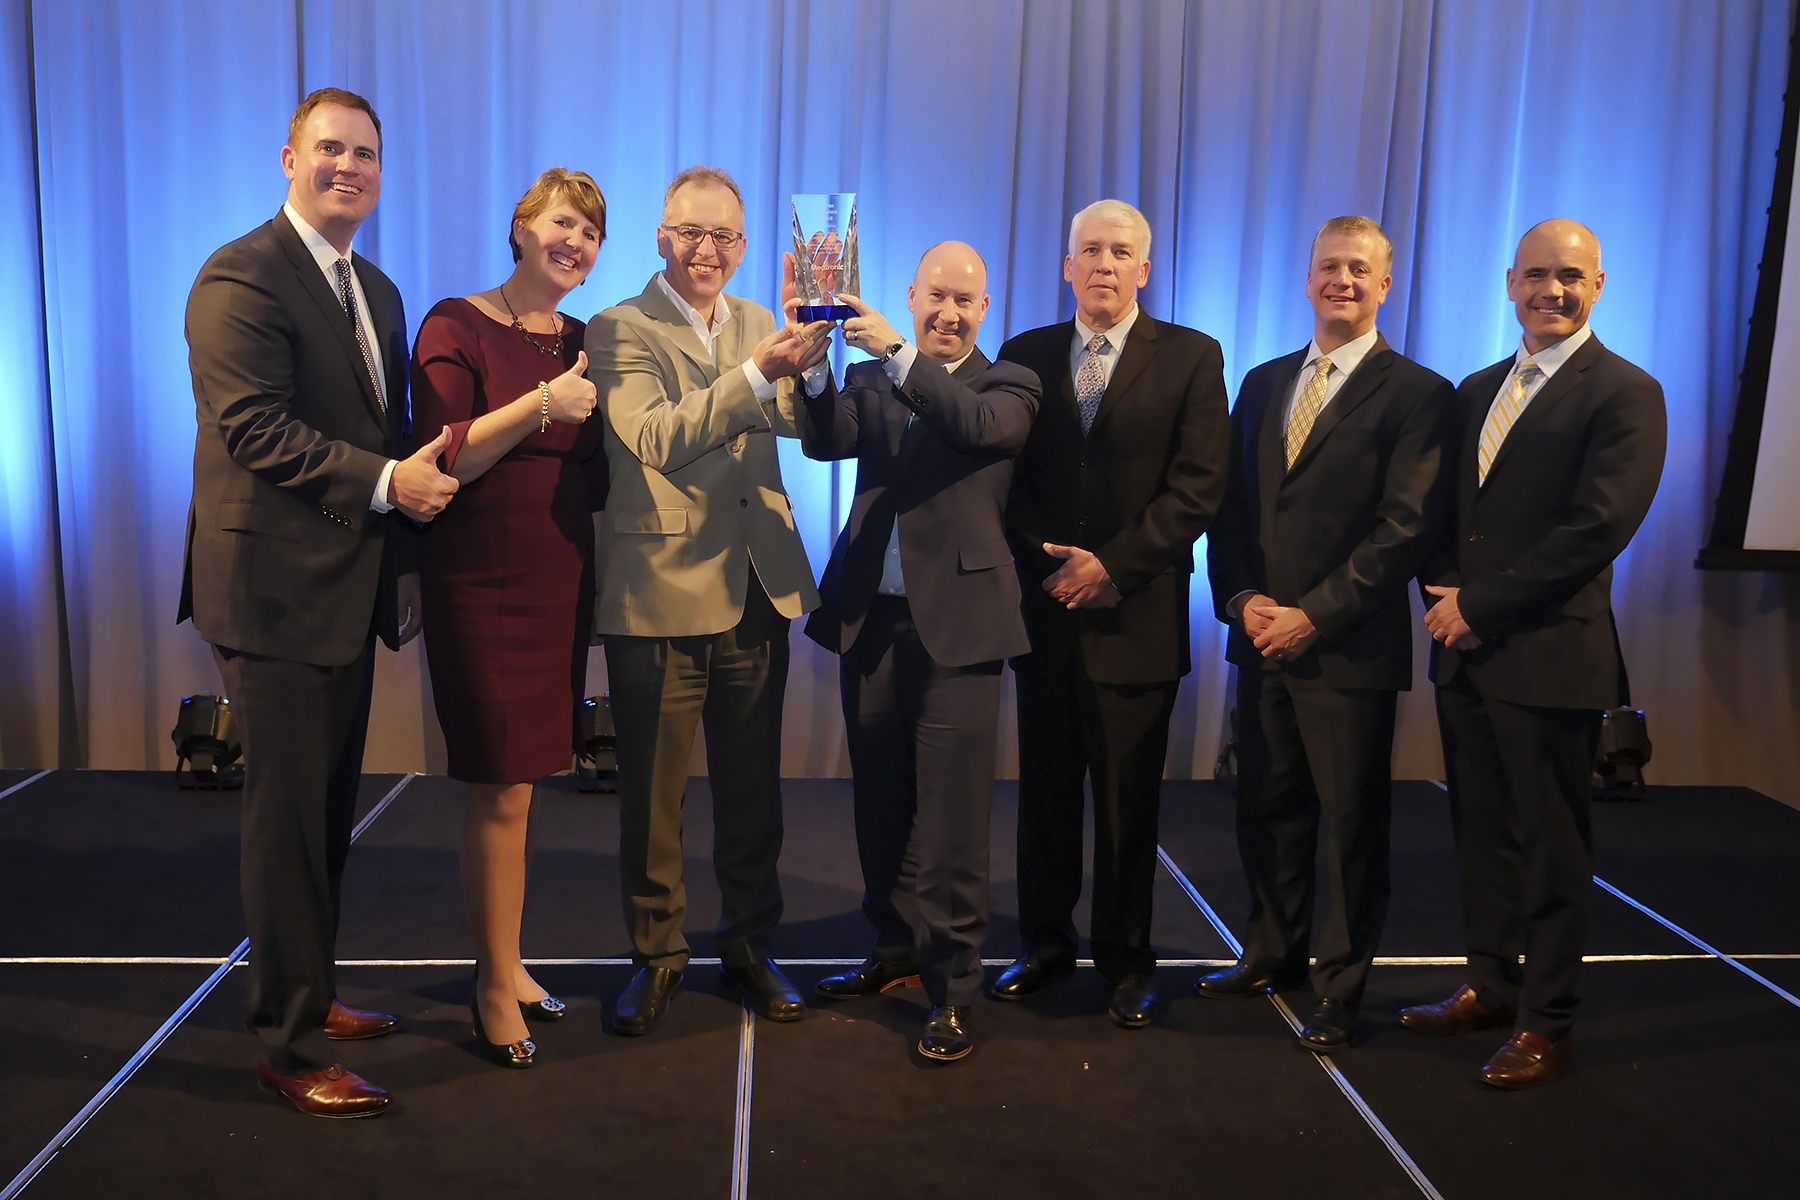 L-R: John Klein (Chief Procurement Officer, Medtronic), Marie O'Malley (Senior Director, Supplier Outreach, Medtronic), Stephen Hogg (CEO, Bellurgan Precision), Fintan Carroll (Director, Bellurgan Precision), Marti Gipson (Director Supply Chain, Medtronic), Carl Resteghini (Vice President Supply Chain, Medtronic), Sean Crowley (Vice President Operations, Medtronic).